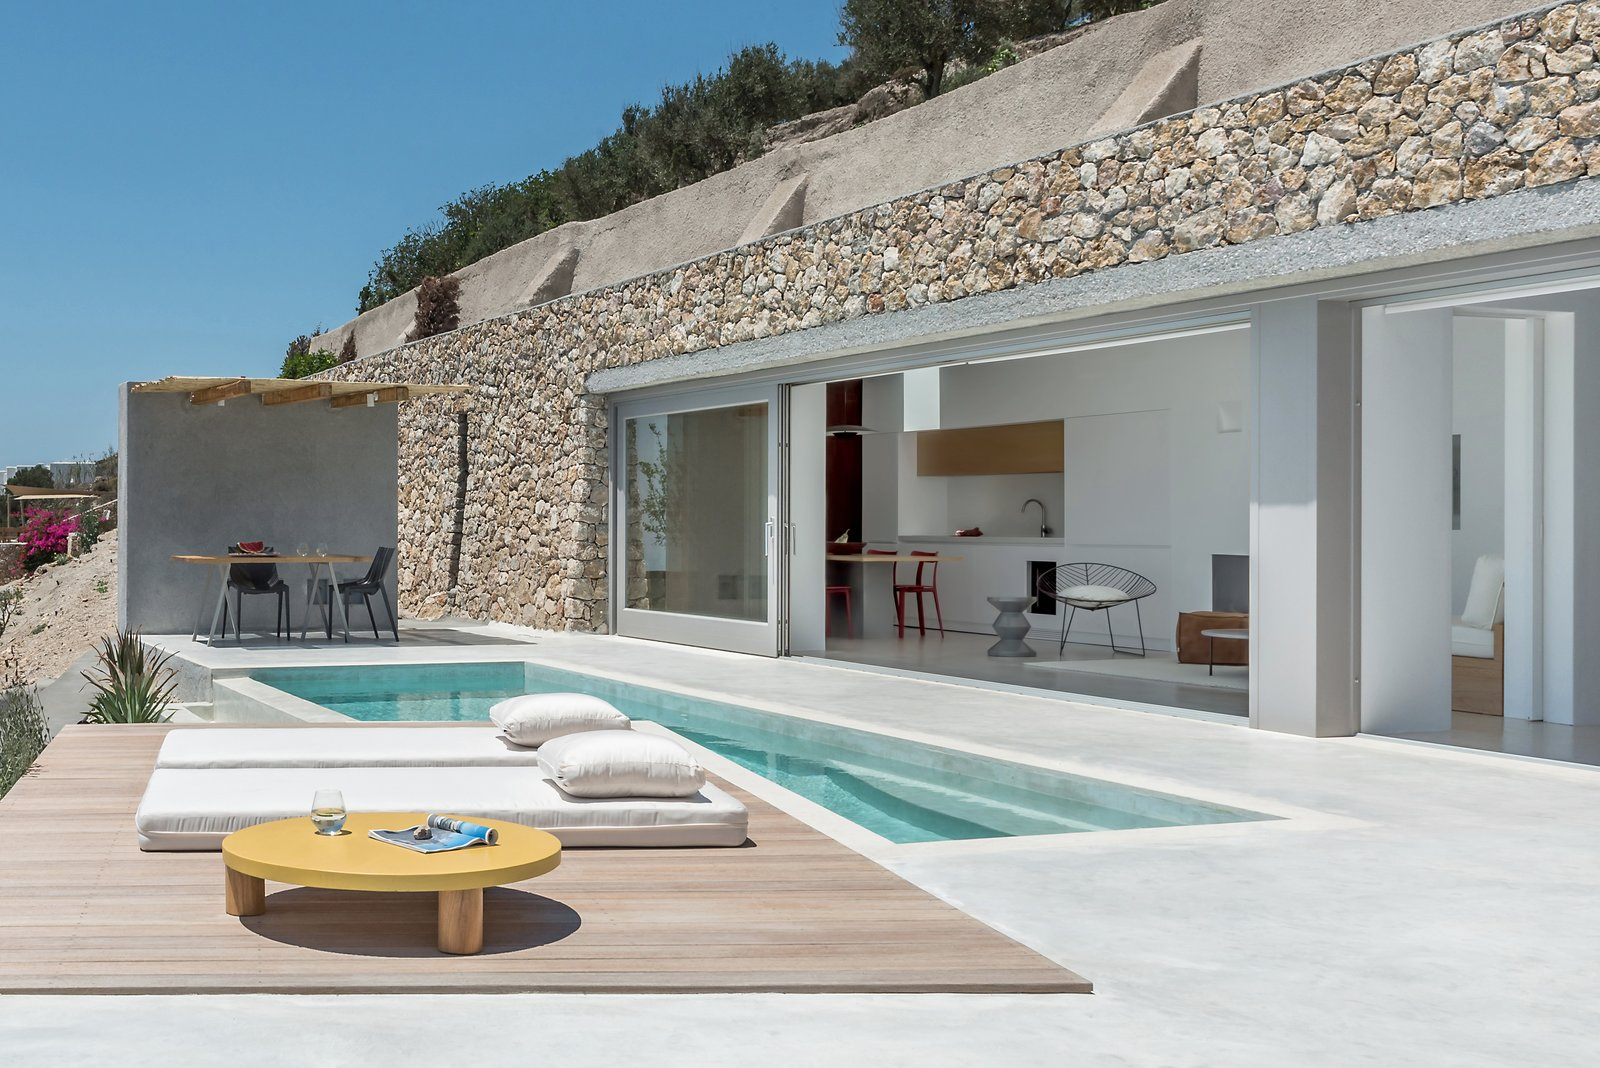 Outdoor, Small, Front Yard, Small, Planters, Swimming, Concrete, Wood, Stone, Concrete, Boulders, Concrete, Decking, and Infinity  Best Outdoor Concrete Infinity Photos from A Modern Home Is Gently Slotted Into a Steep Slope in Santorini